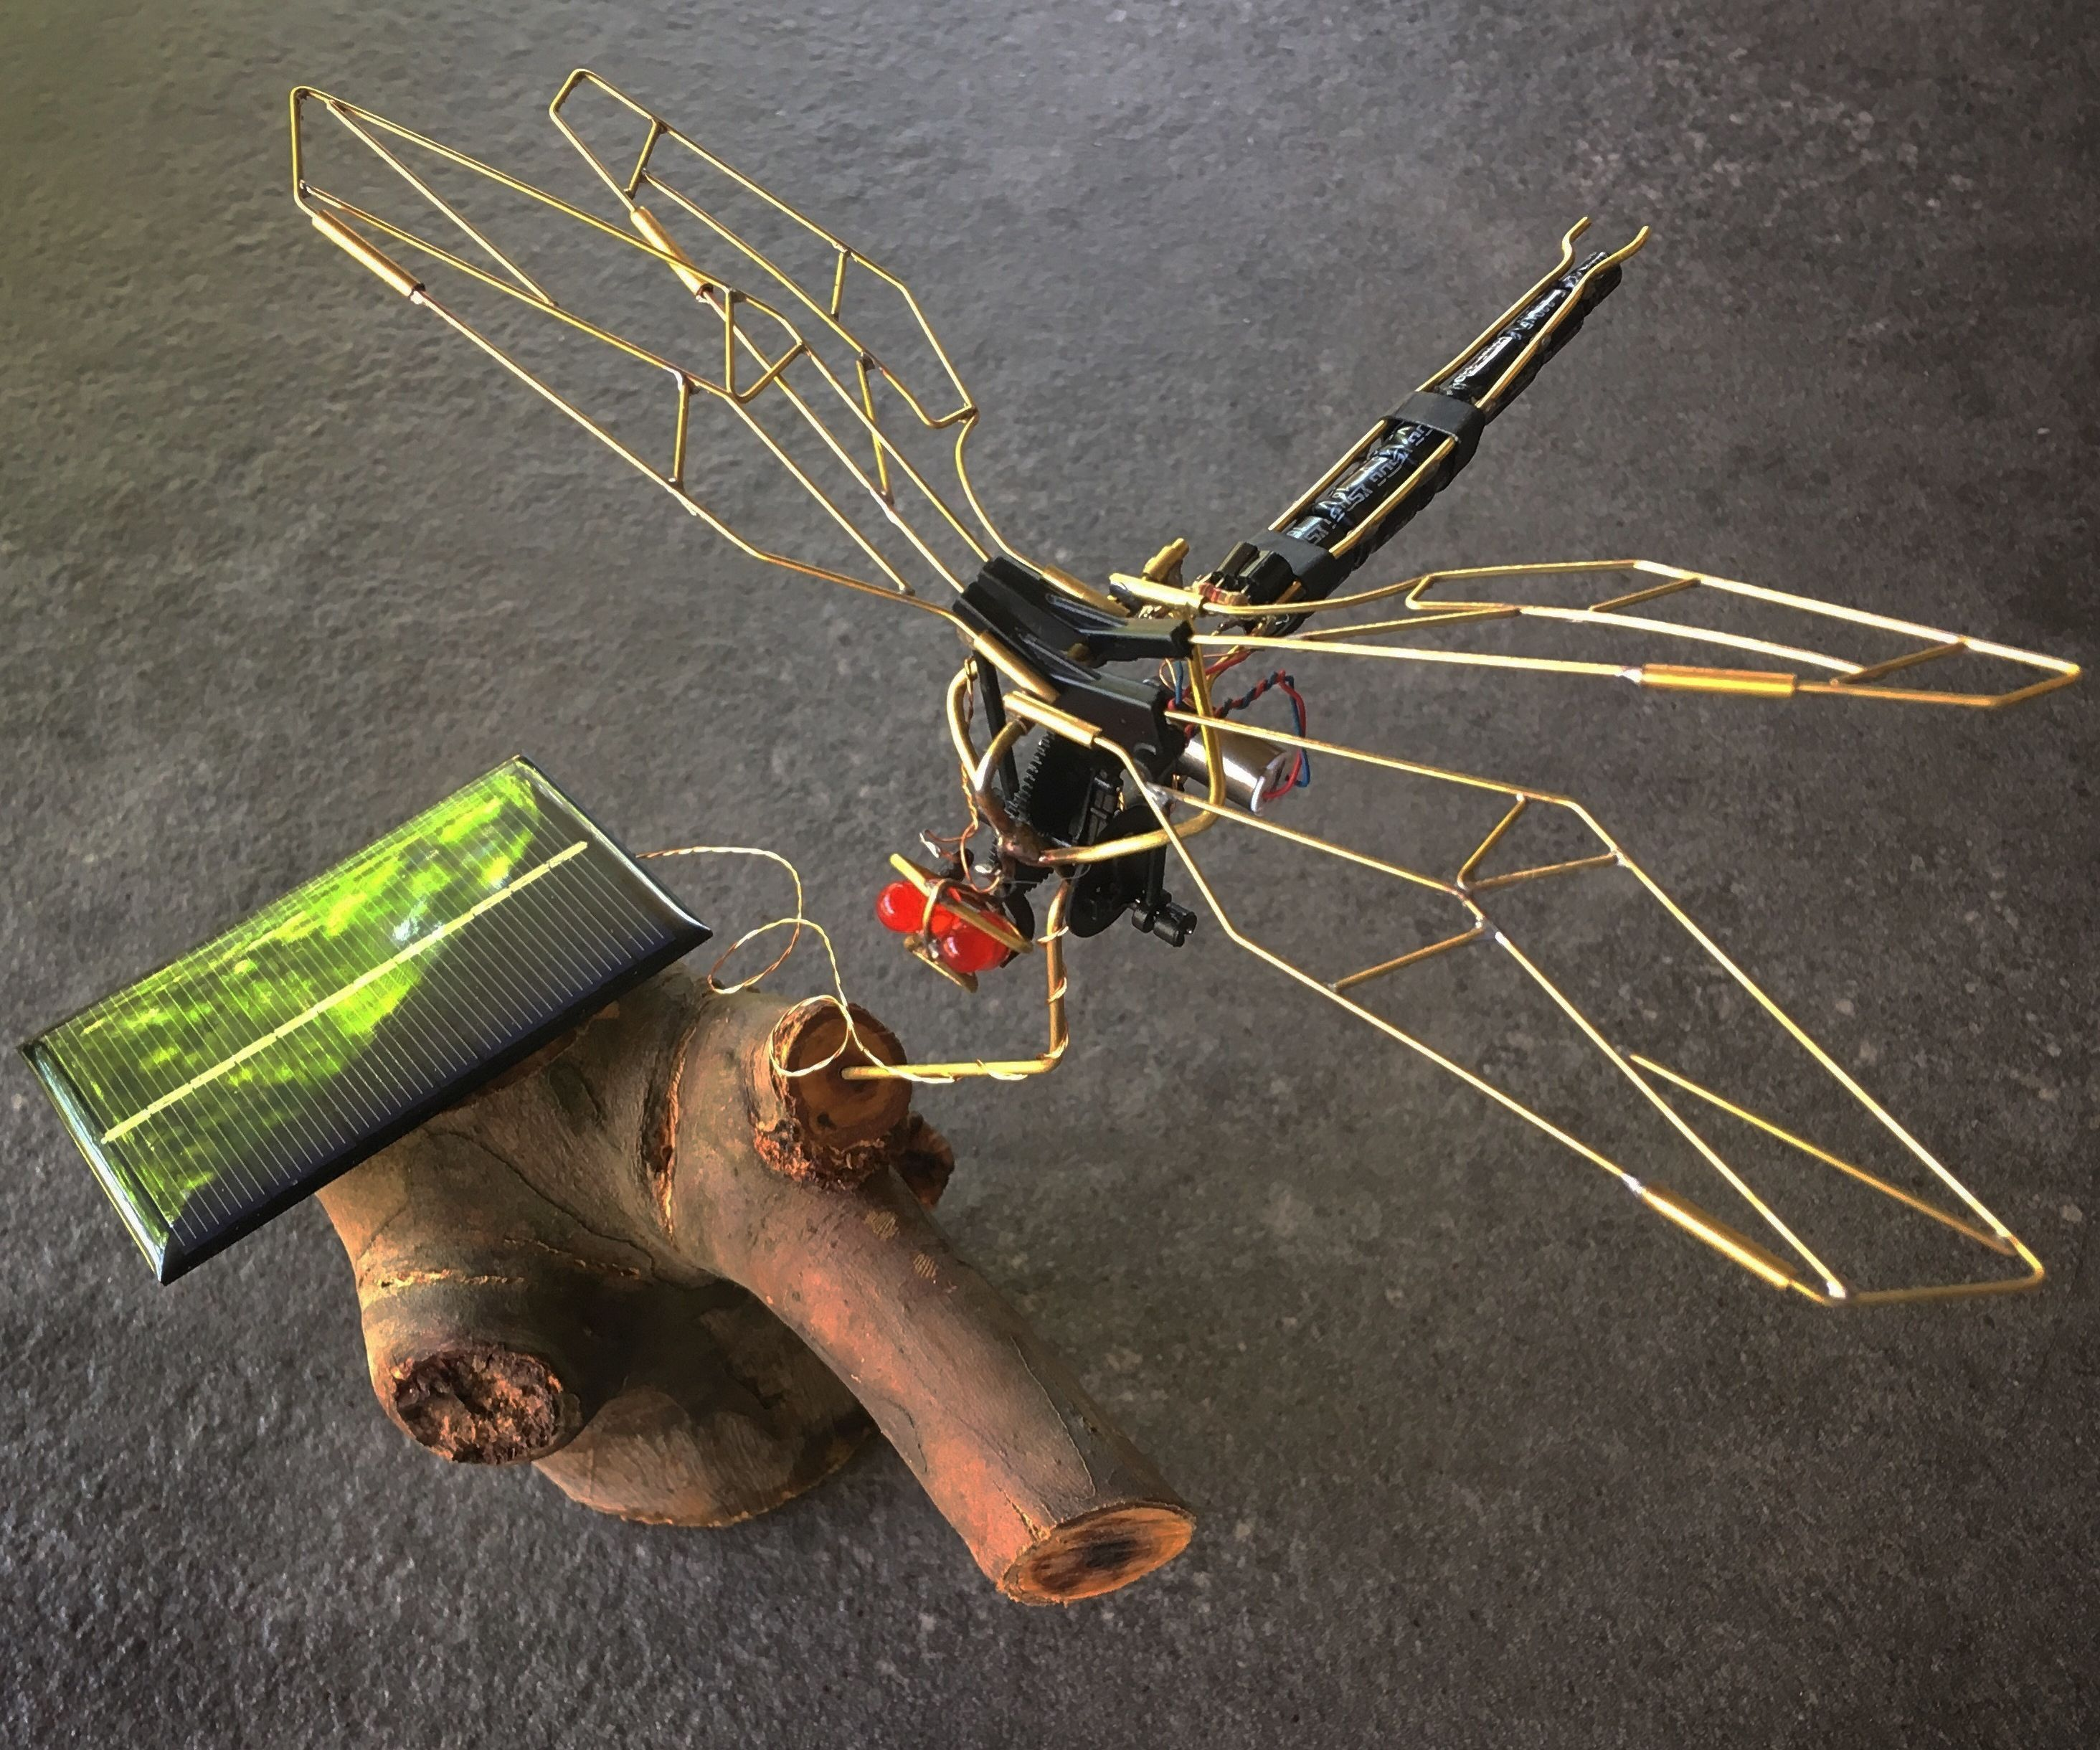 Flapping Dragonfly BEAM Robot From a Broke RC Toy